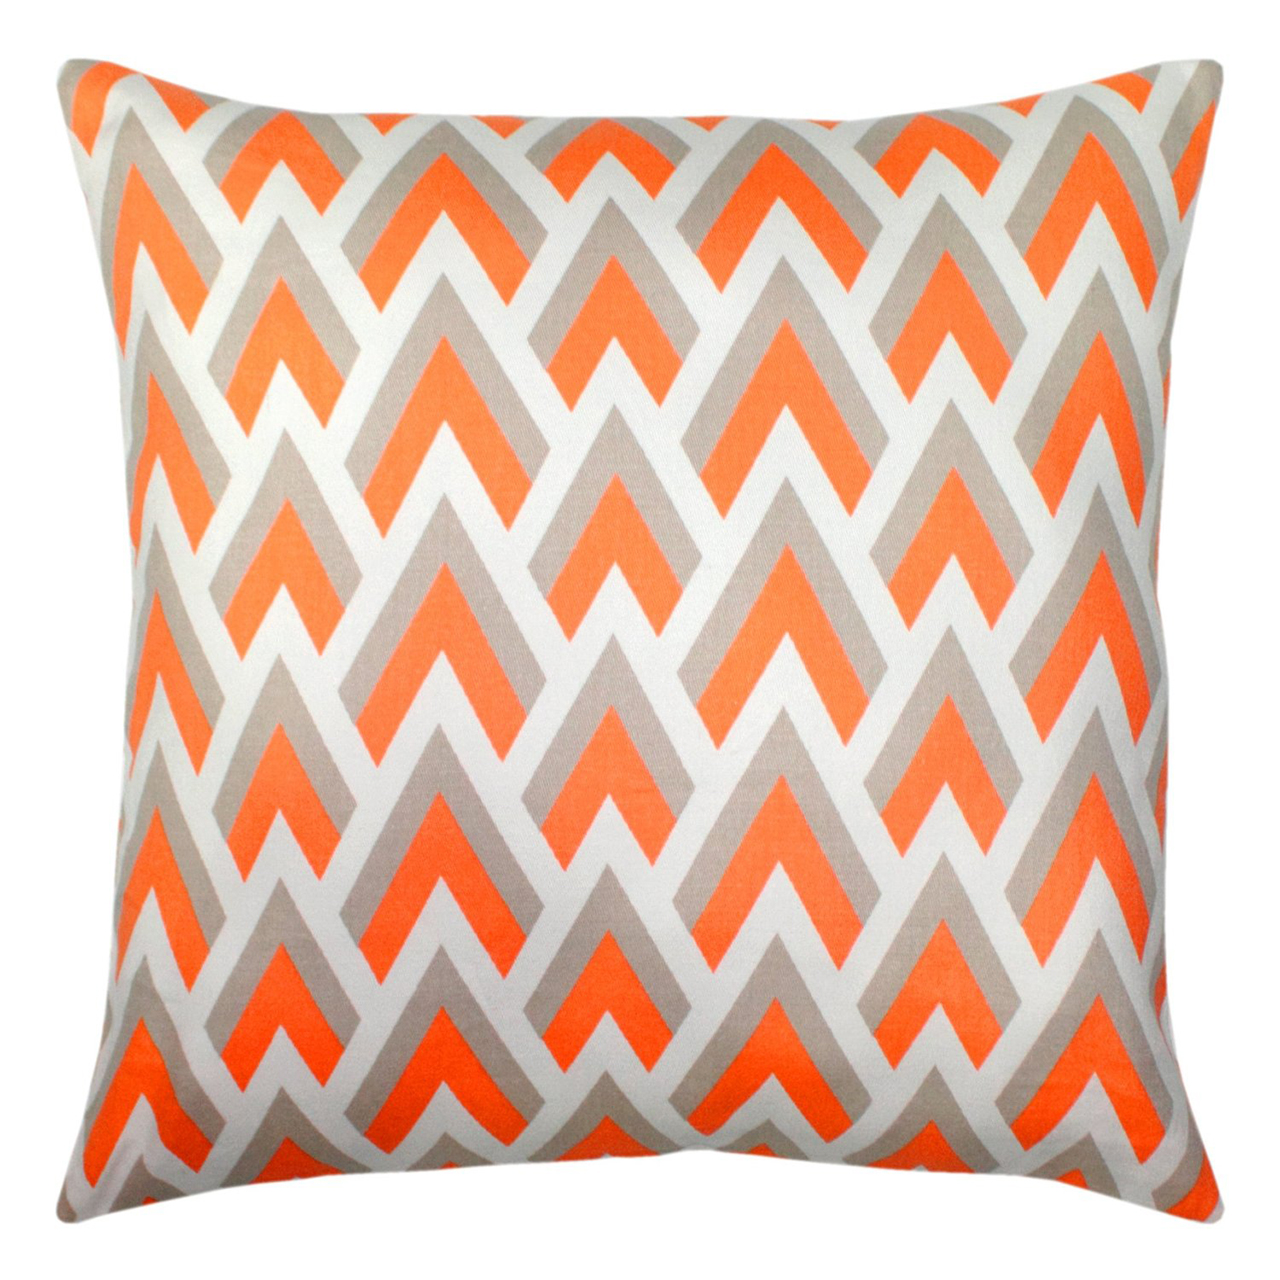 of the best throw pillows to buy in  - chevron spike accent pillows for indoors or outdoors